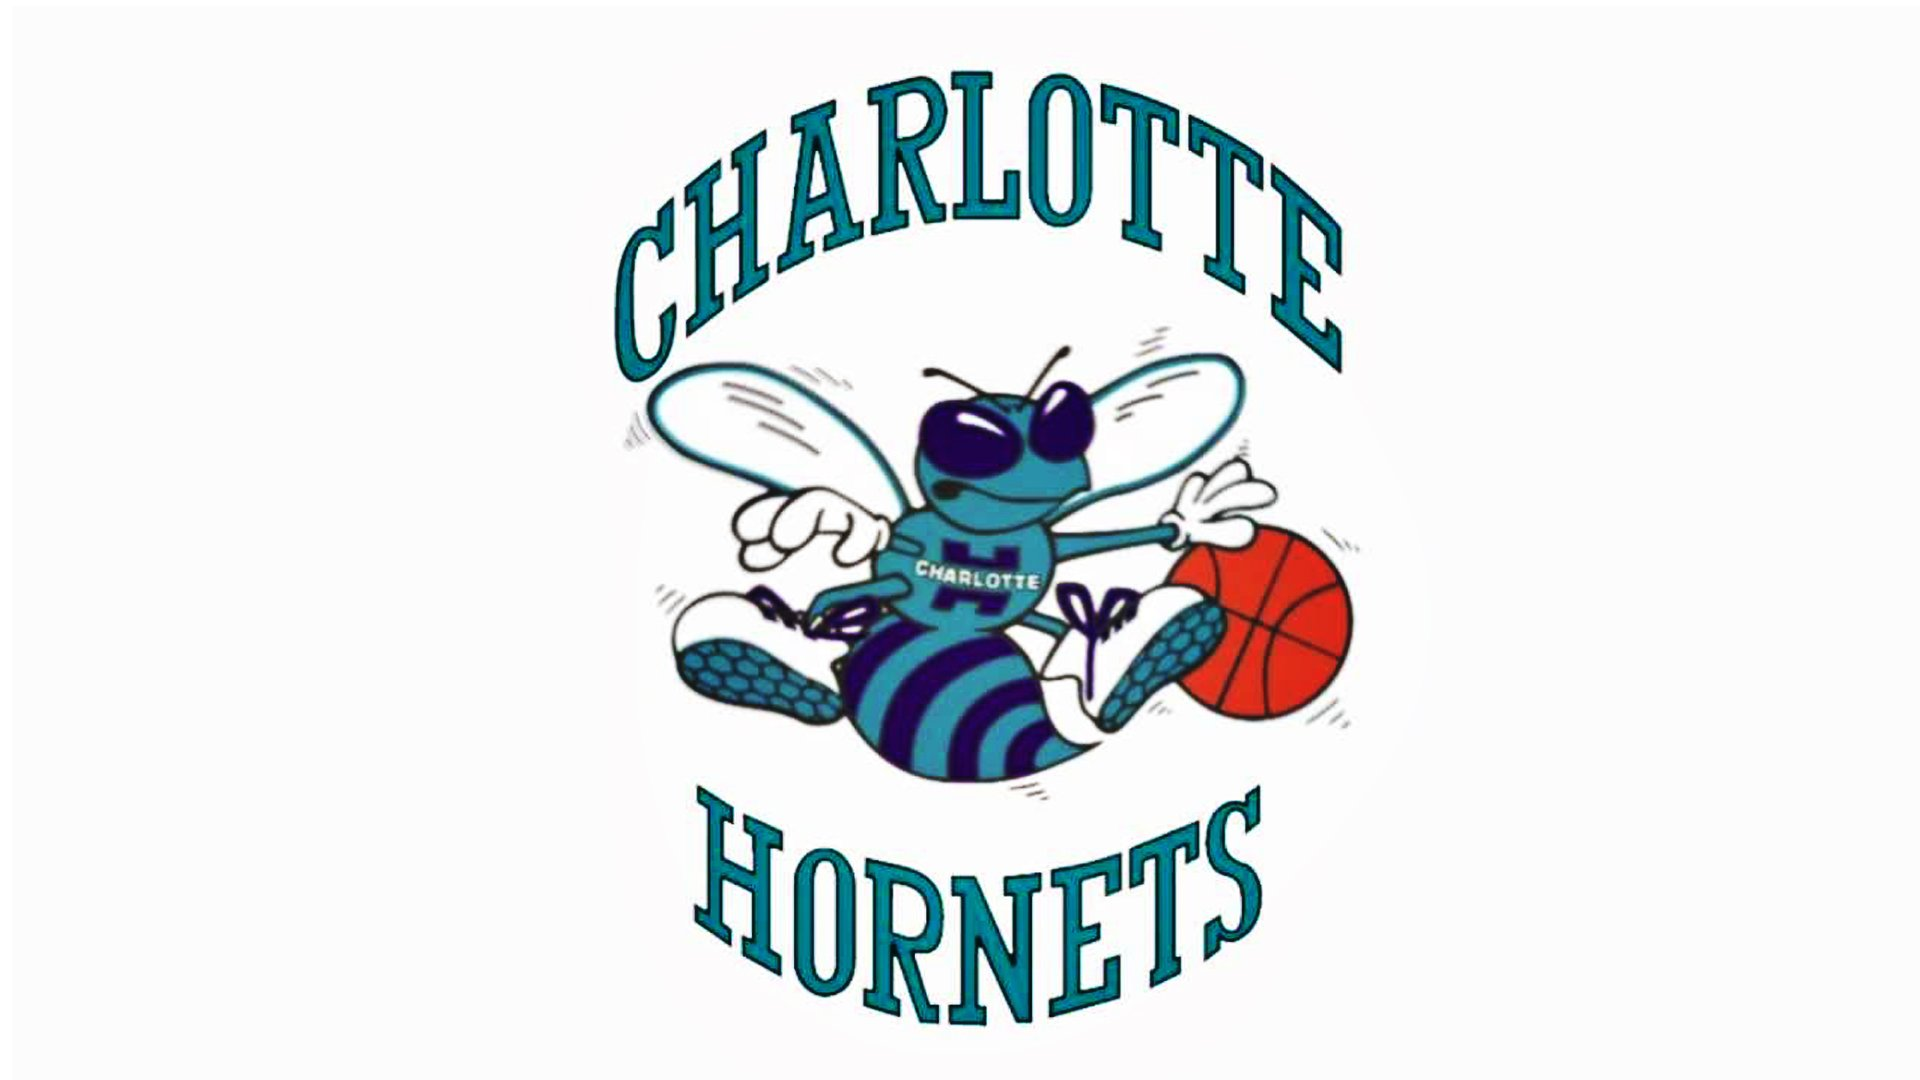 By The Next Season Charlotte Hornets Old Logo Was Replaced While Theme Itself A Hornet With Basketball Remained Same